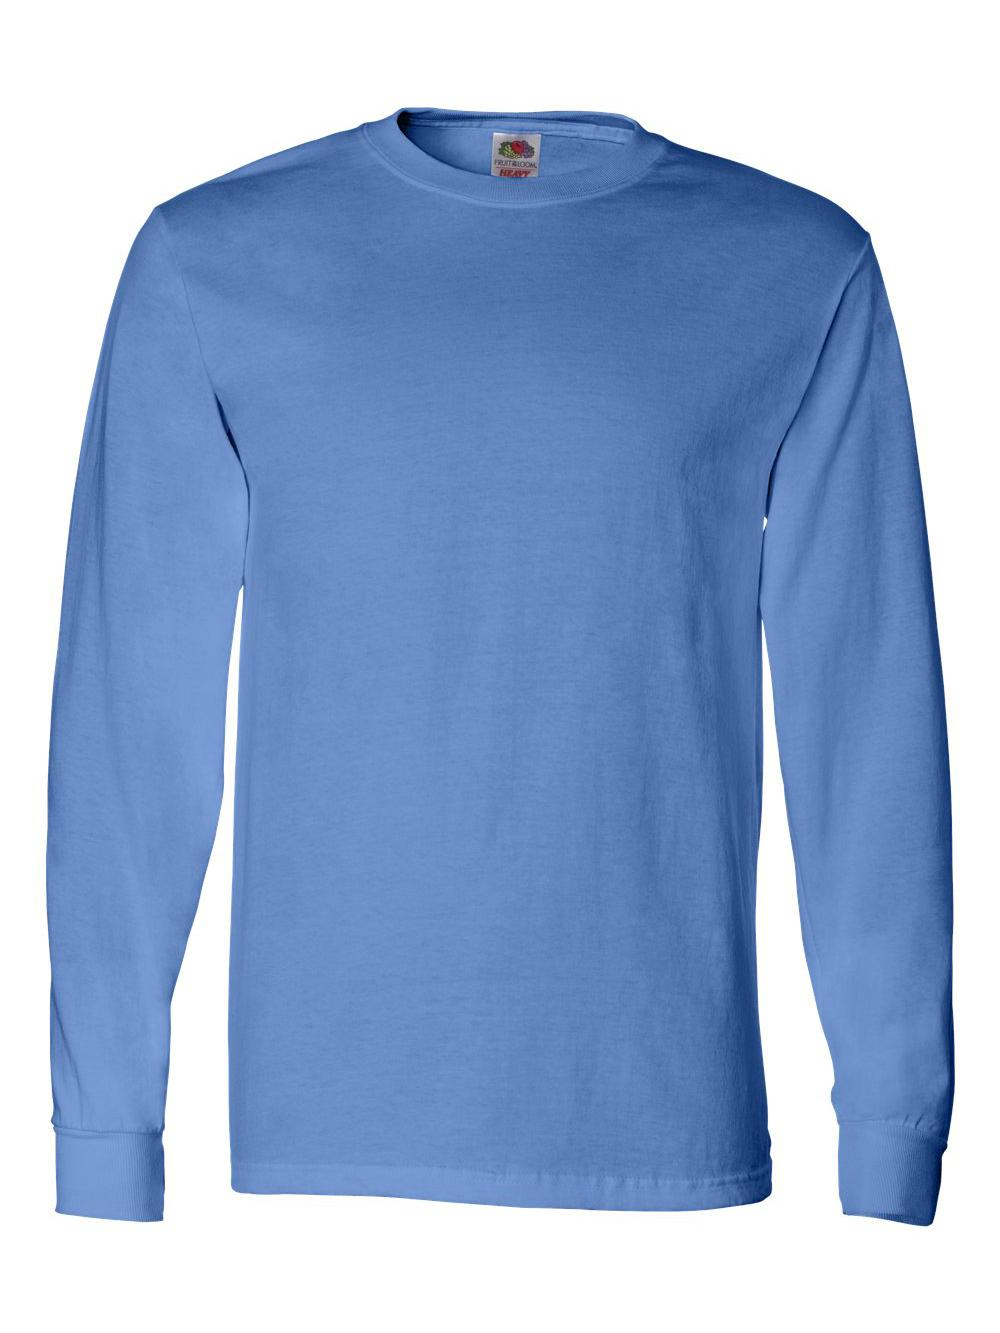 Fruit-of-the-Loom-HD-Cotton-Long-Sleeve-T-Shirt-4930R thumbnail 27